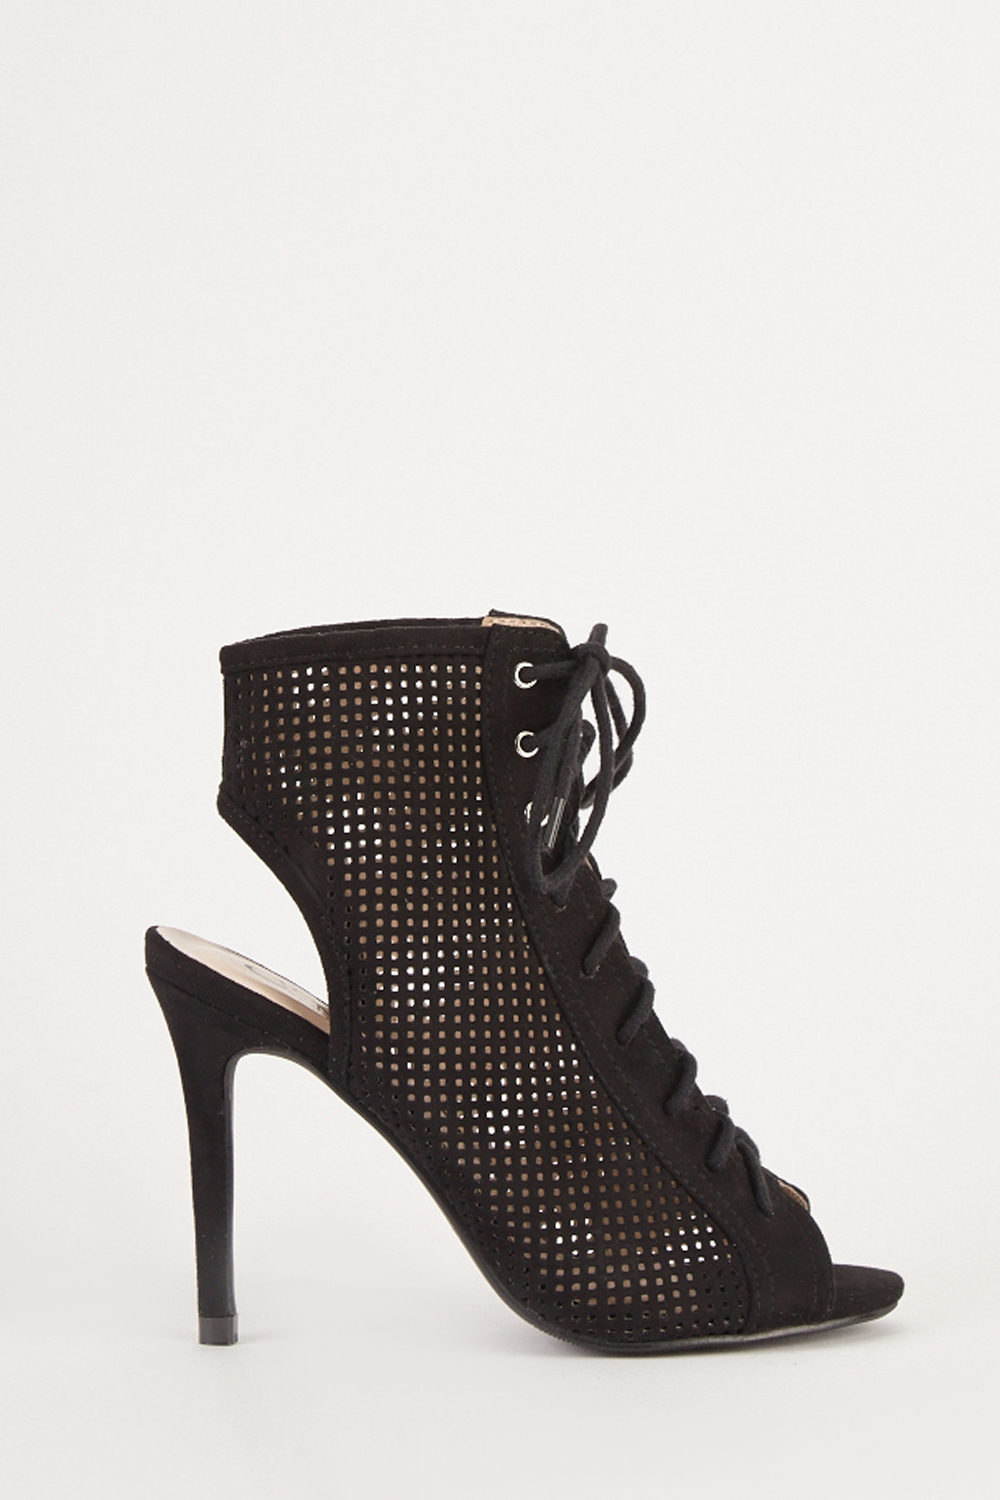 e4665ce757d1 Perforated Lace Up Peep Toe Boots - Black - Just £5